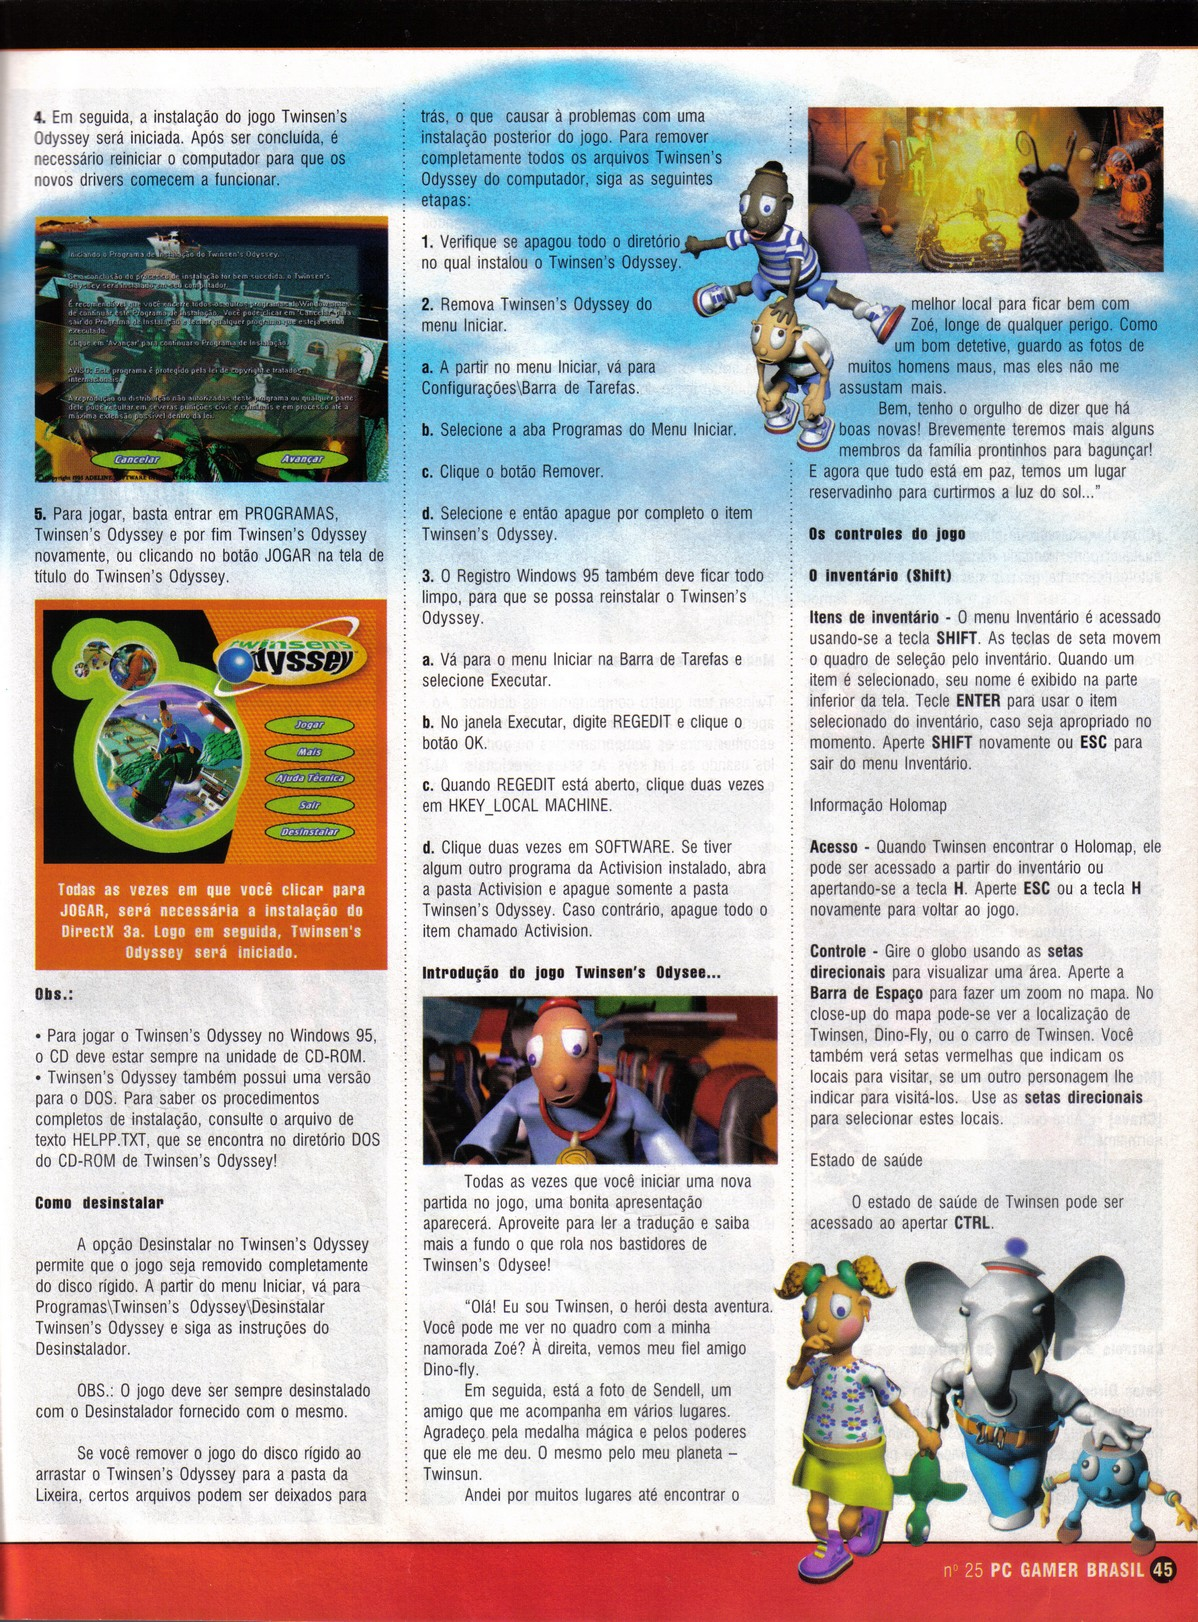 CD Gamer issue 25 - page 2